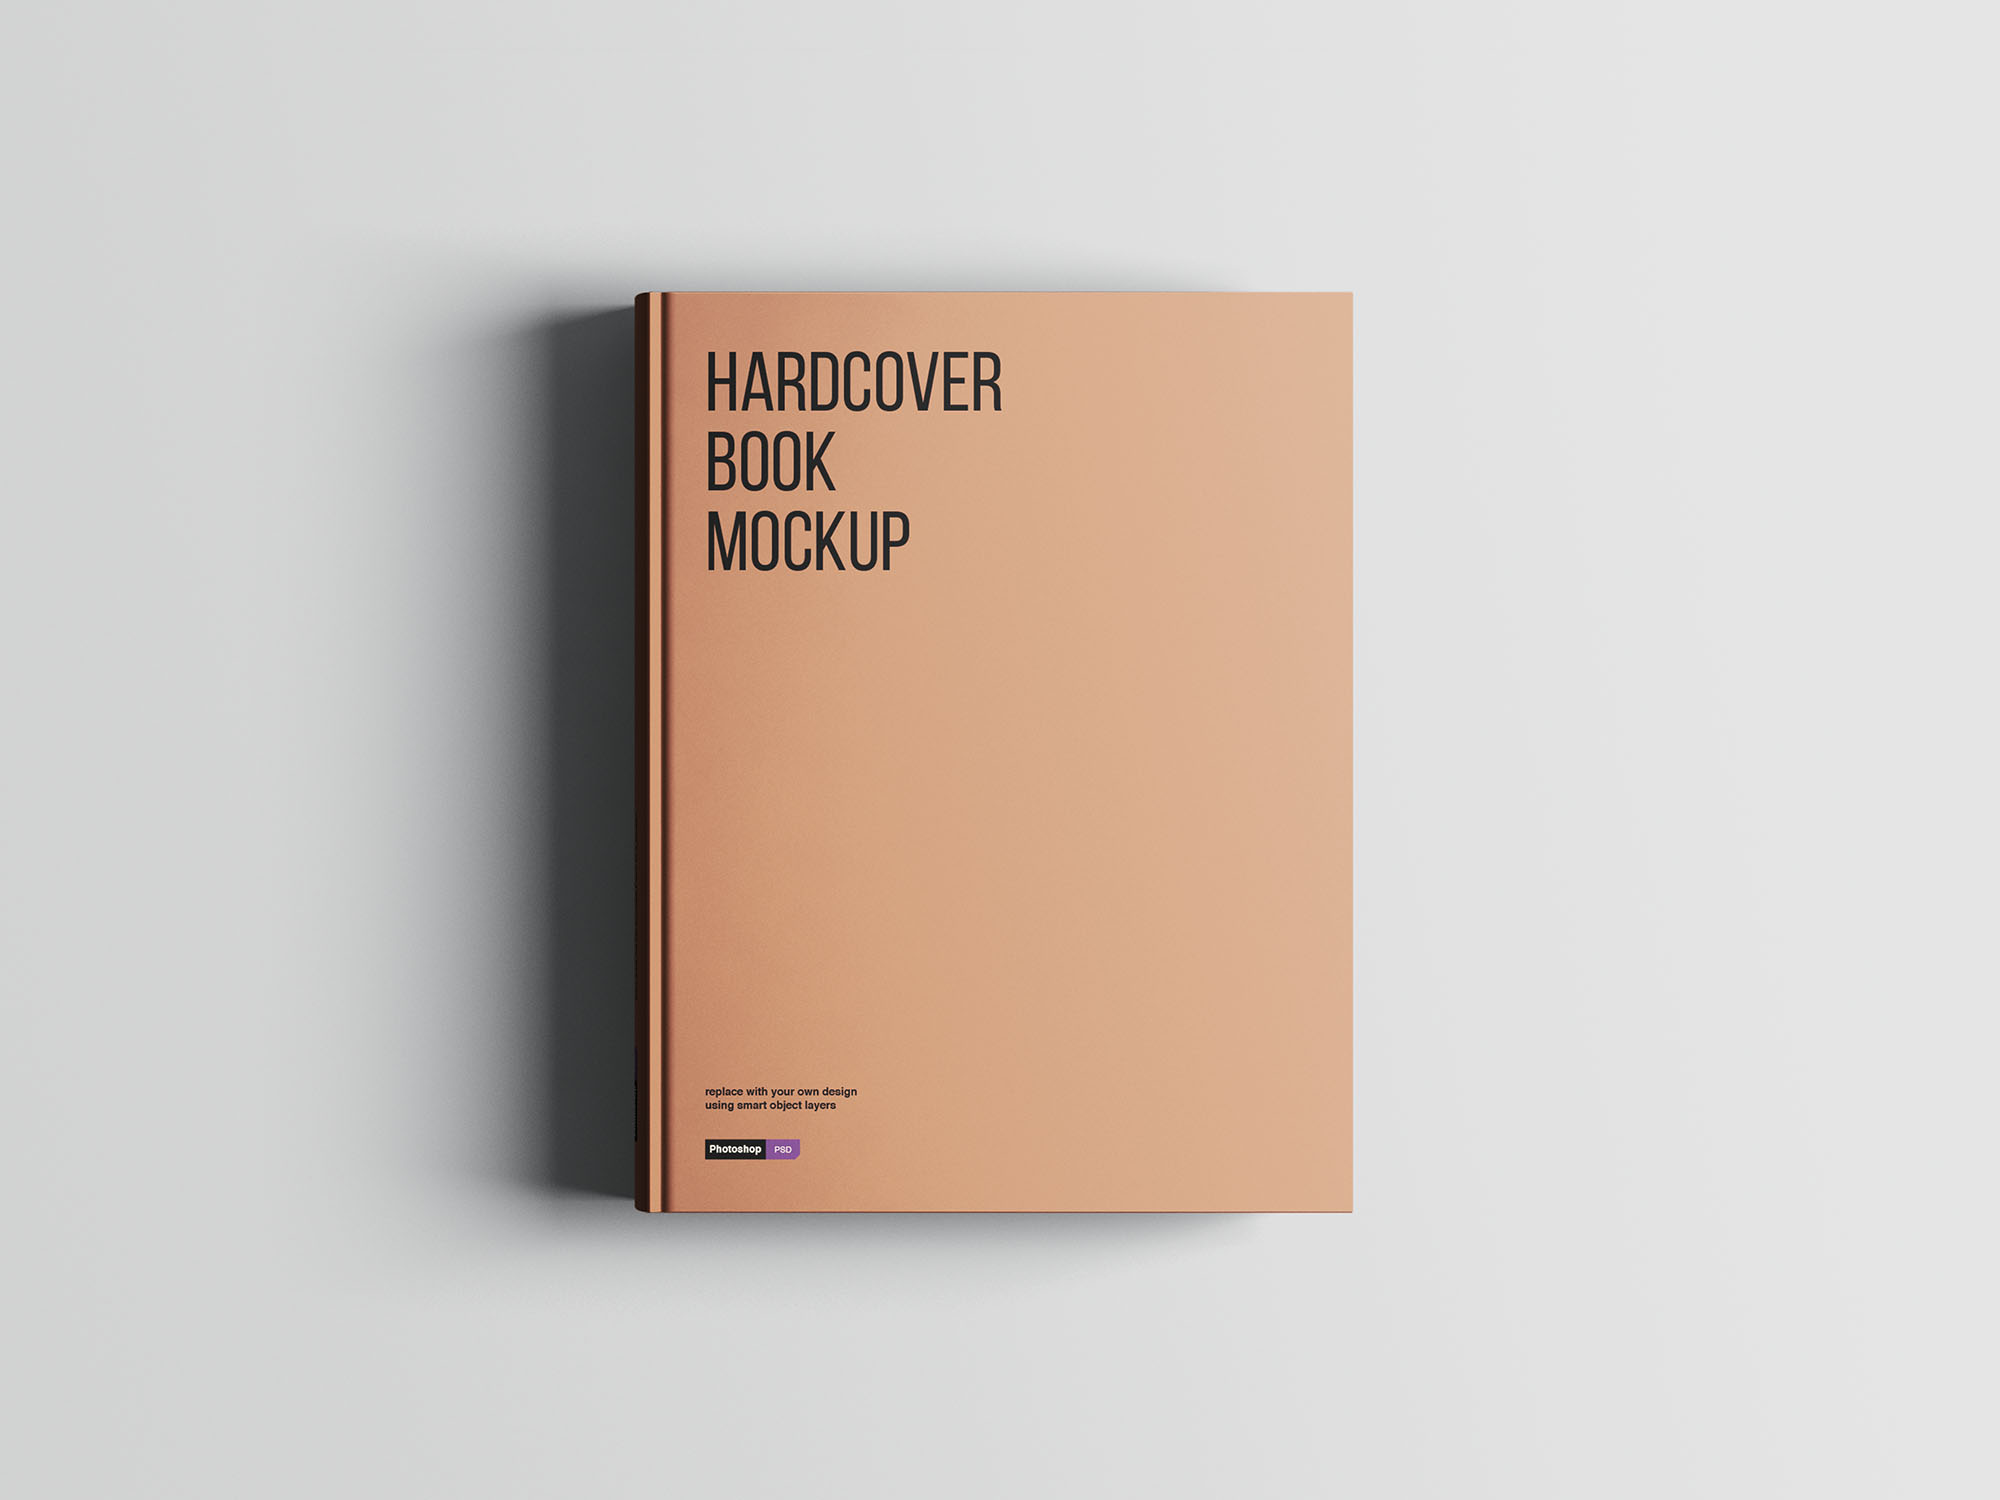 Hardcover A4 Book Mockup 01